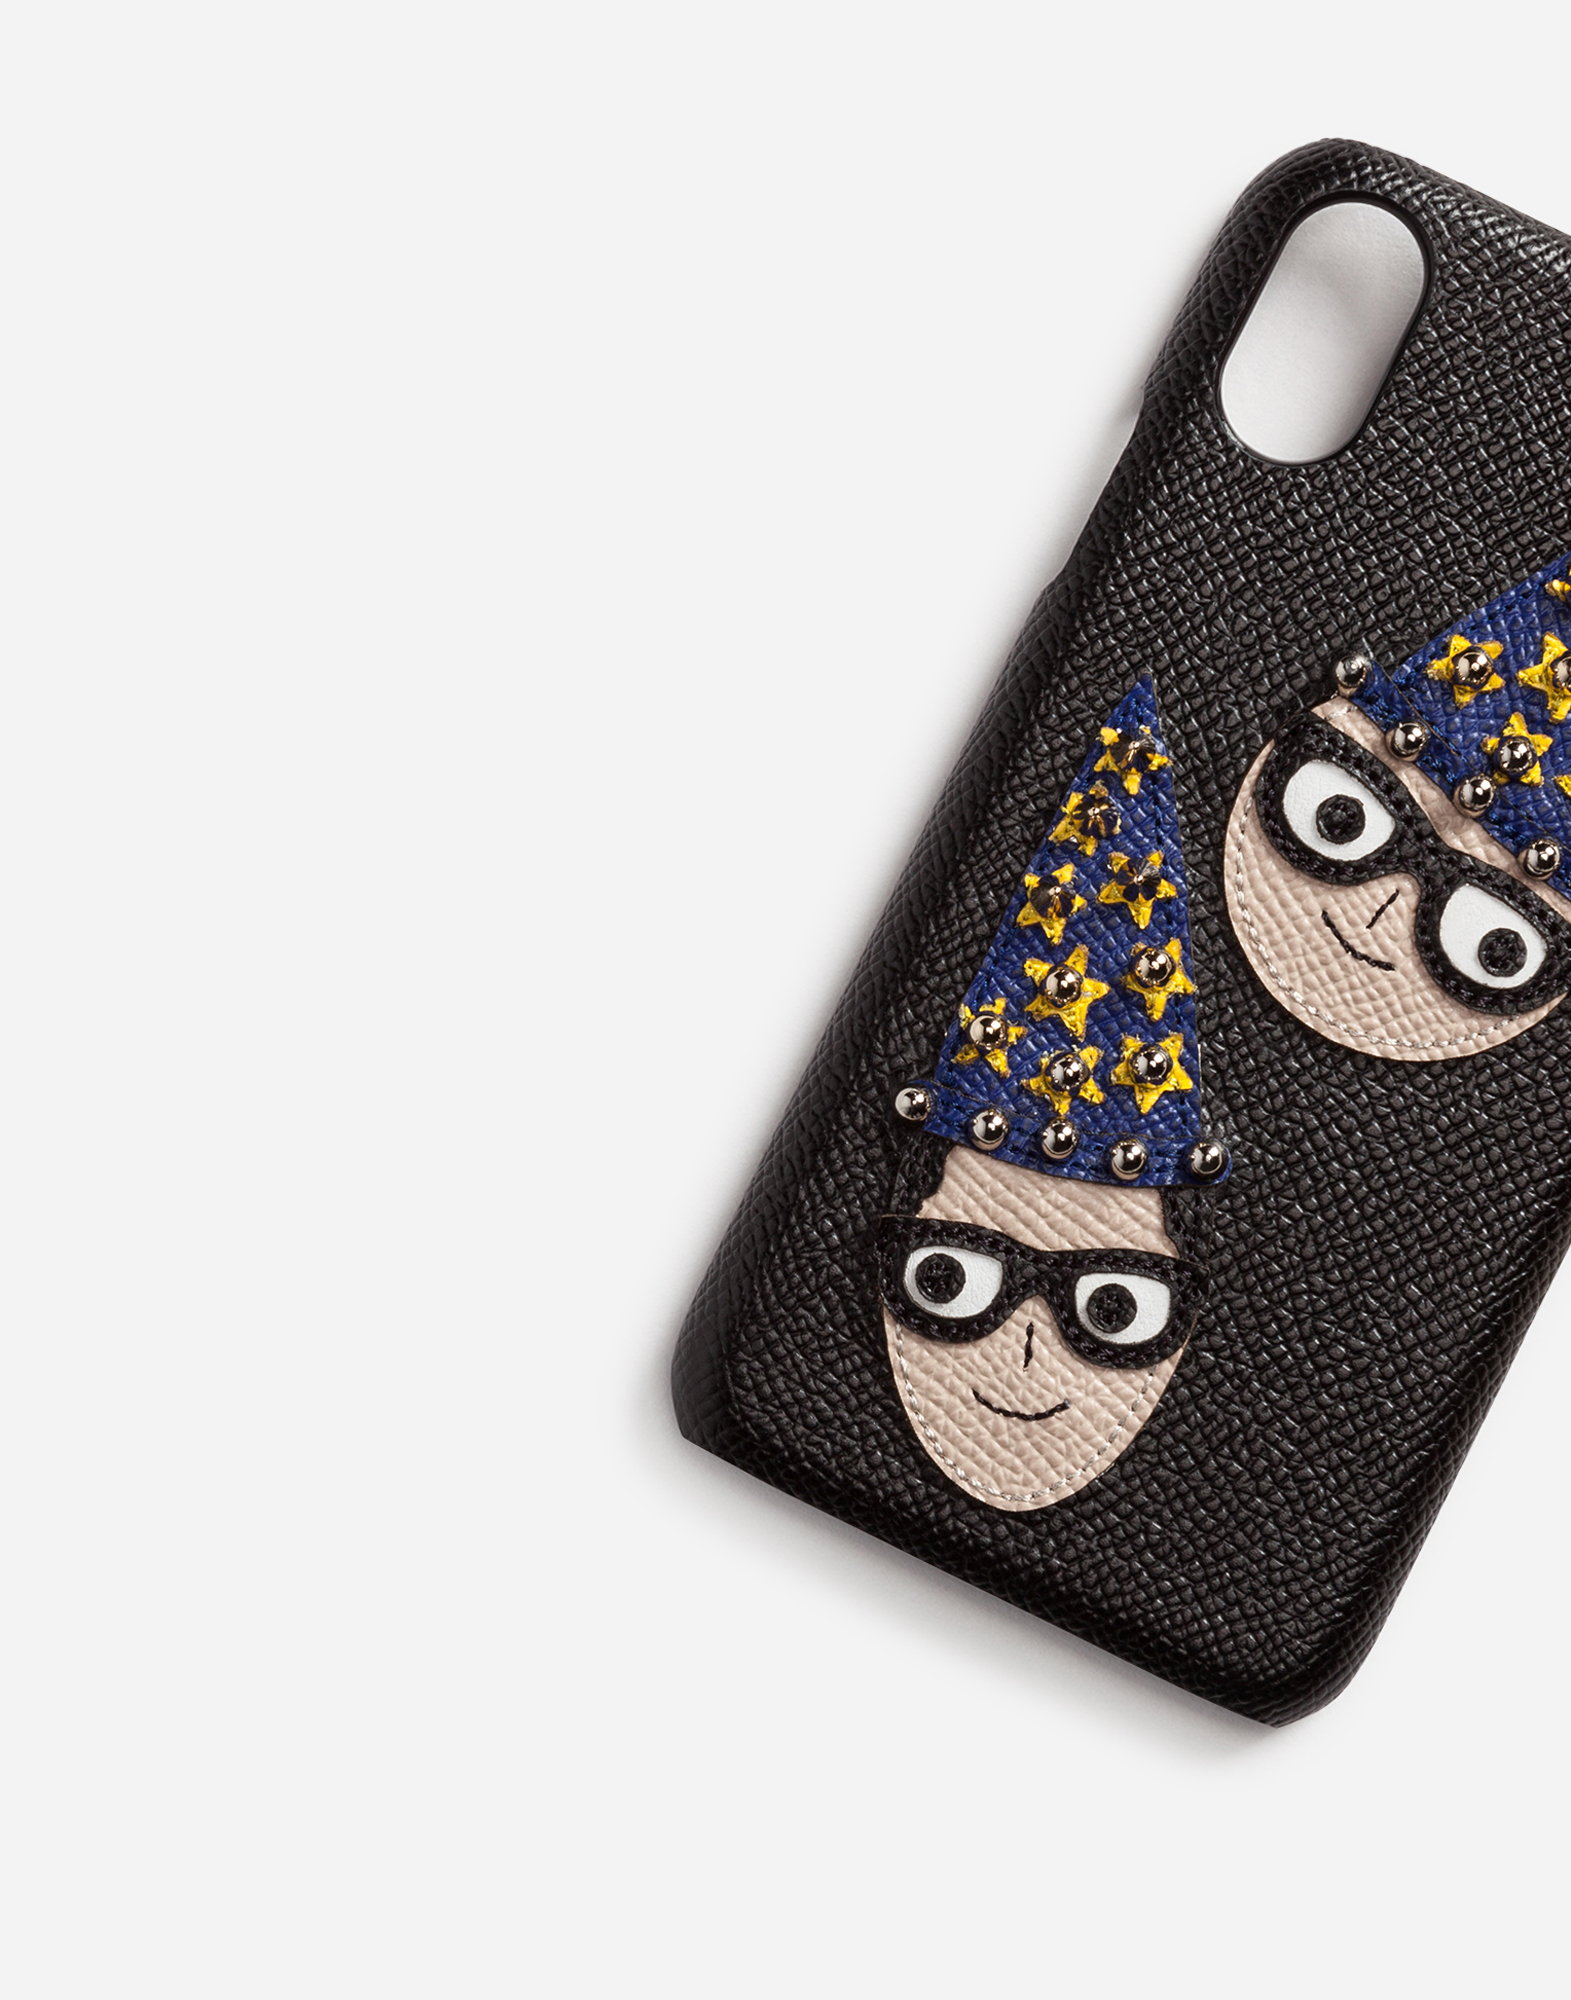 IPHONE X COVER IN DAUPHINE CALFSKIN WITH DESIGNERS' PATCHES